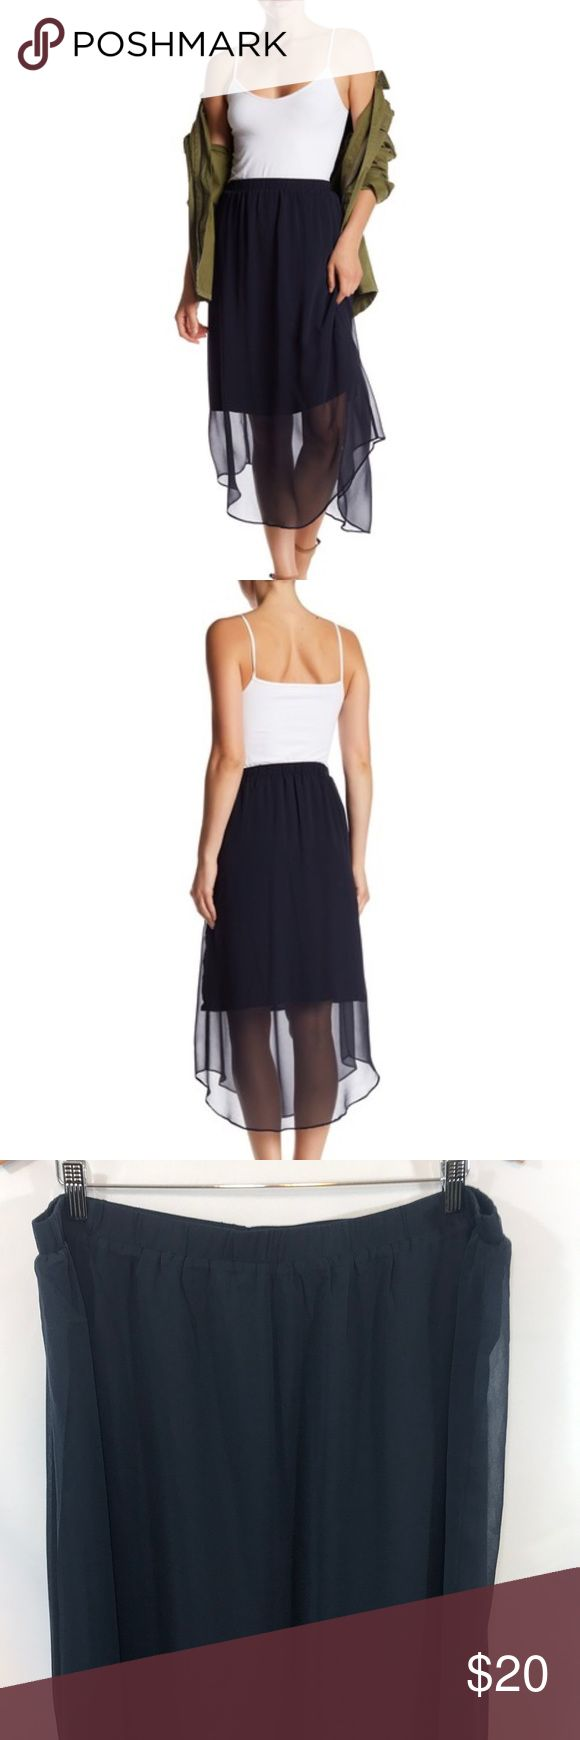 Joe Freeh Semi Sheer Midi Skirt Details - Midnight Blue Color - Elasticized waist - Lightly pleated - Semi sheer construction - Shirt tail hem - Lined - Imported Fiber Content 100% polyester Care Machine wash Additional Info Fit: this style fits true to size. Measurements are in the photos Joe Fresh Skirts Midi